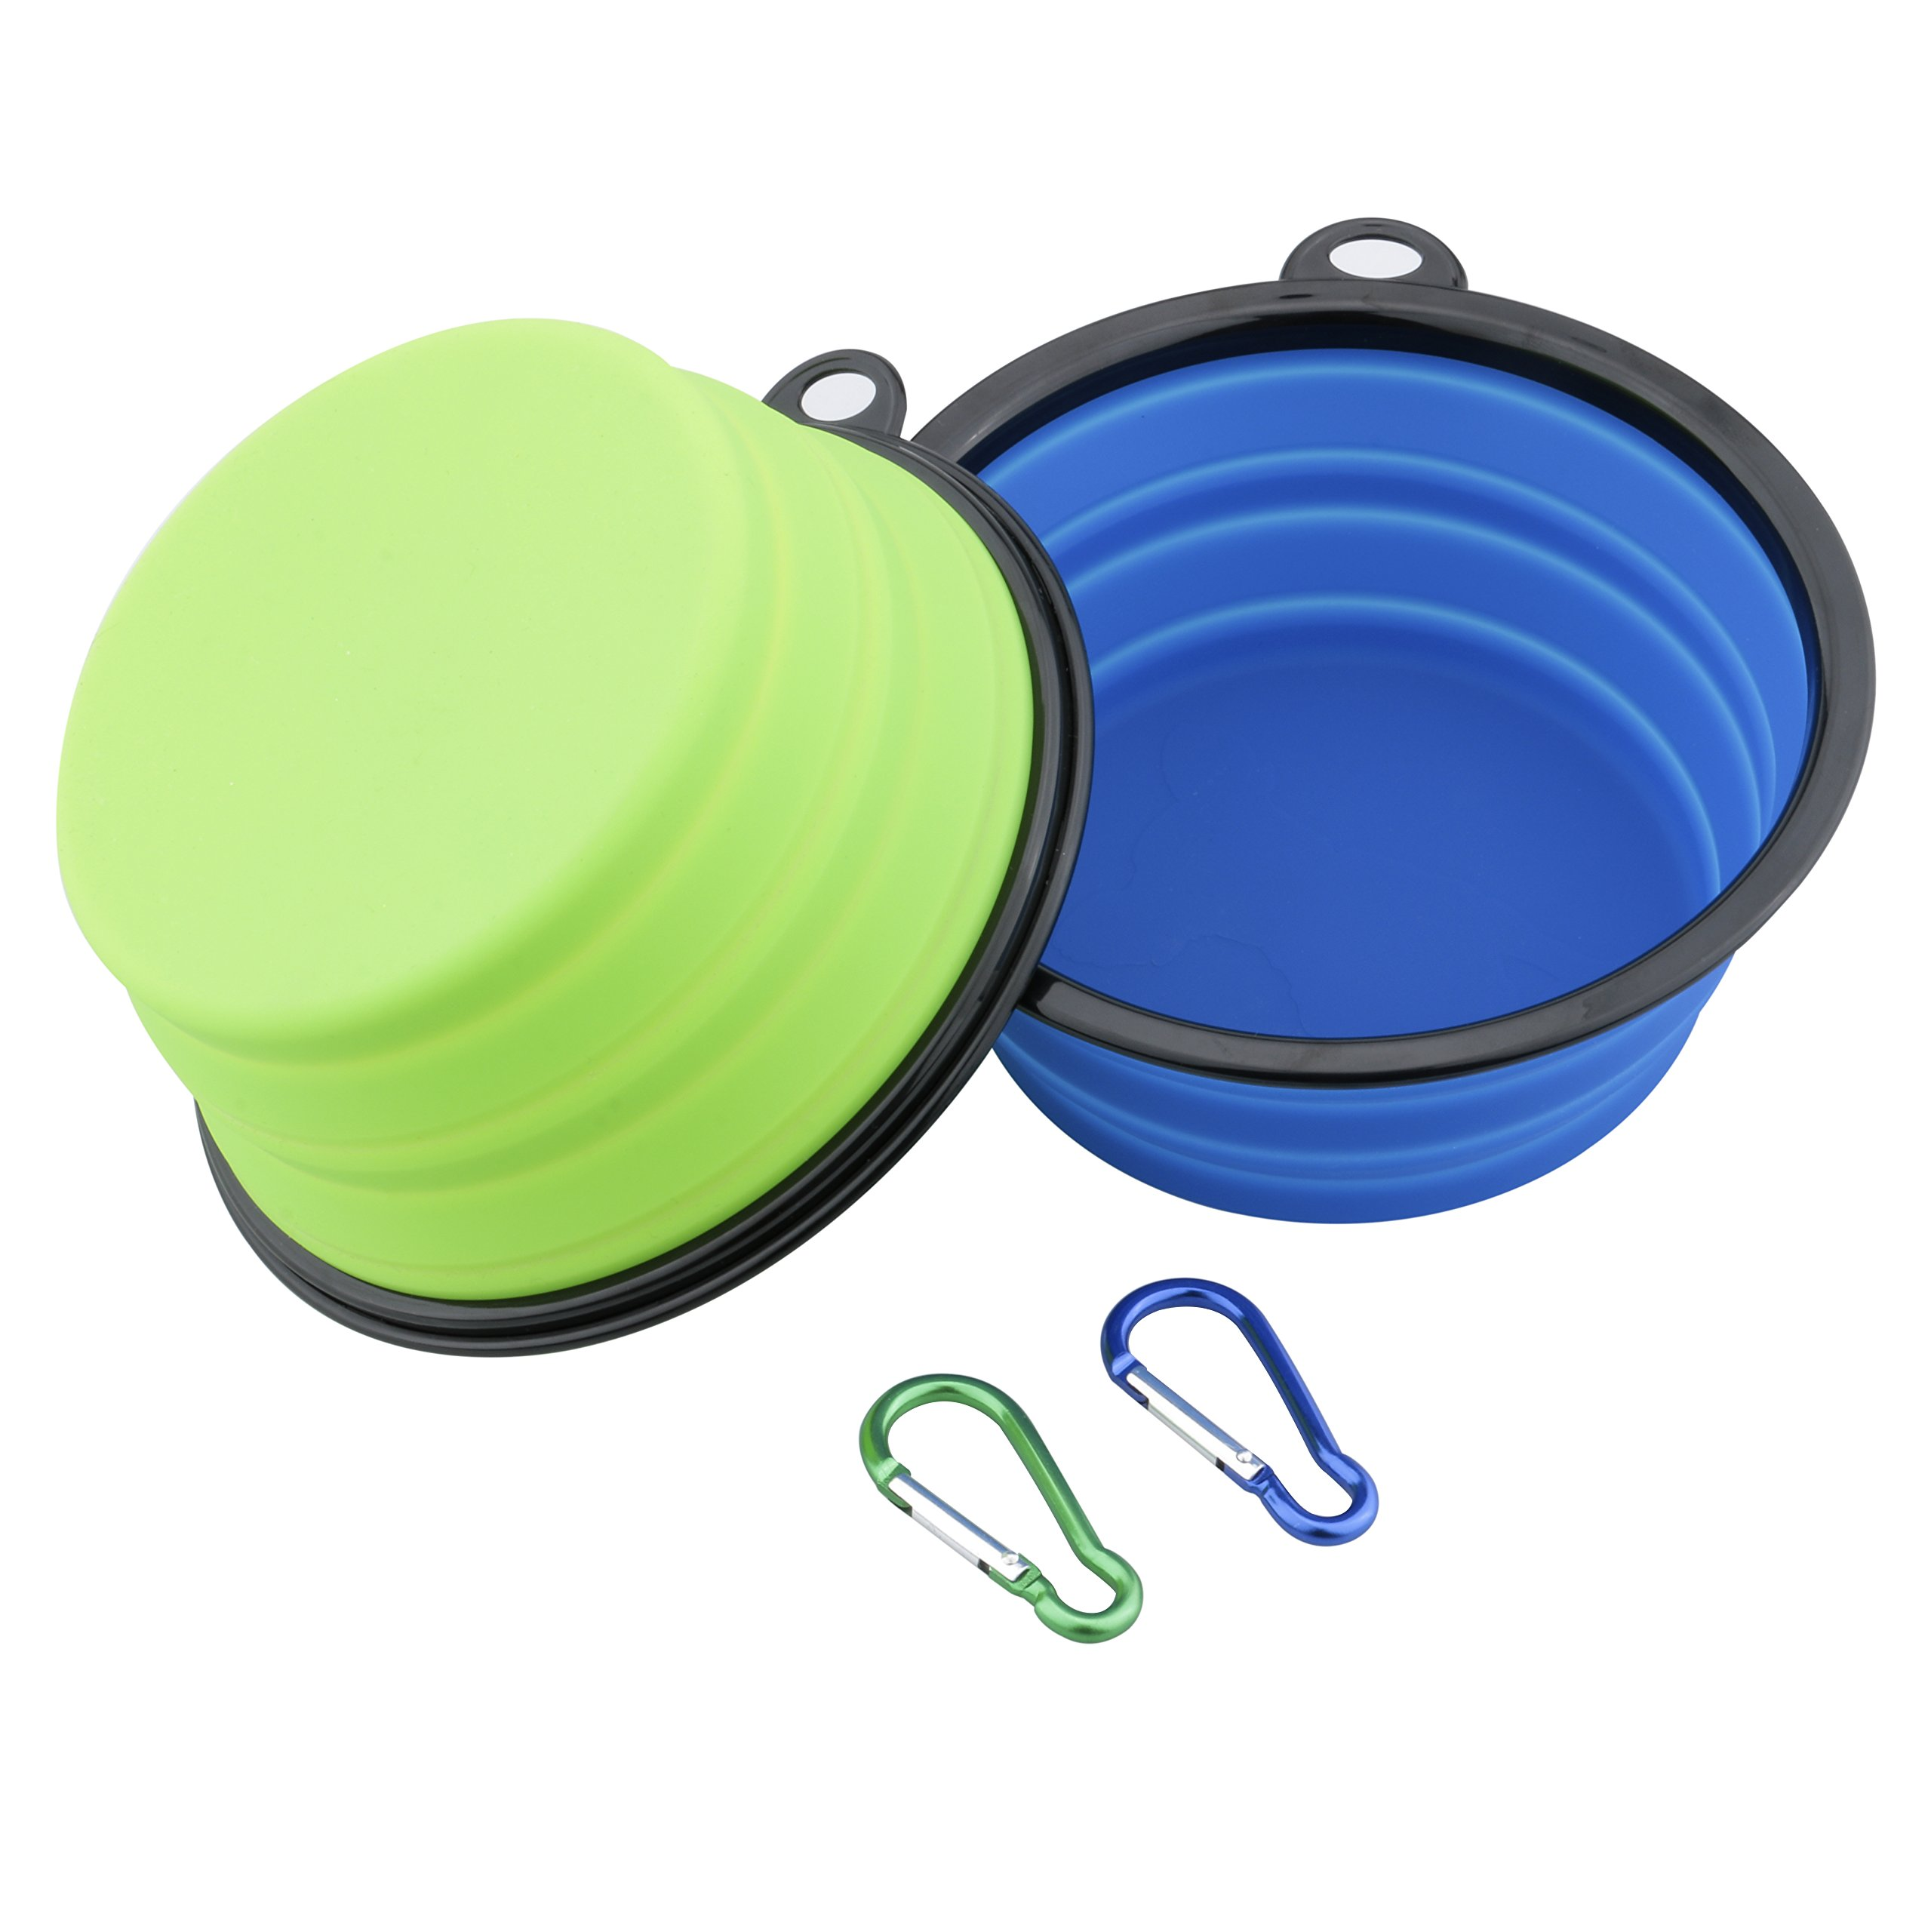 Leeko Extra Large 2 Pack Collapsible Dog Bowls, 7'' Diameter Silicone Folding Portable Bowls for Cats Dogs with Carabiner Belt Clip, Green and Blue